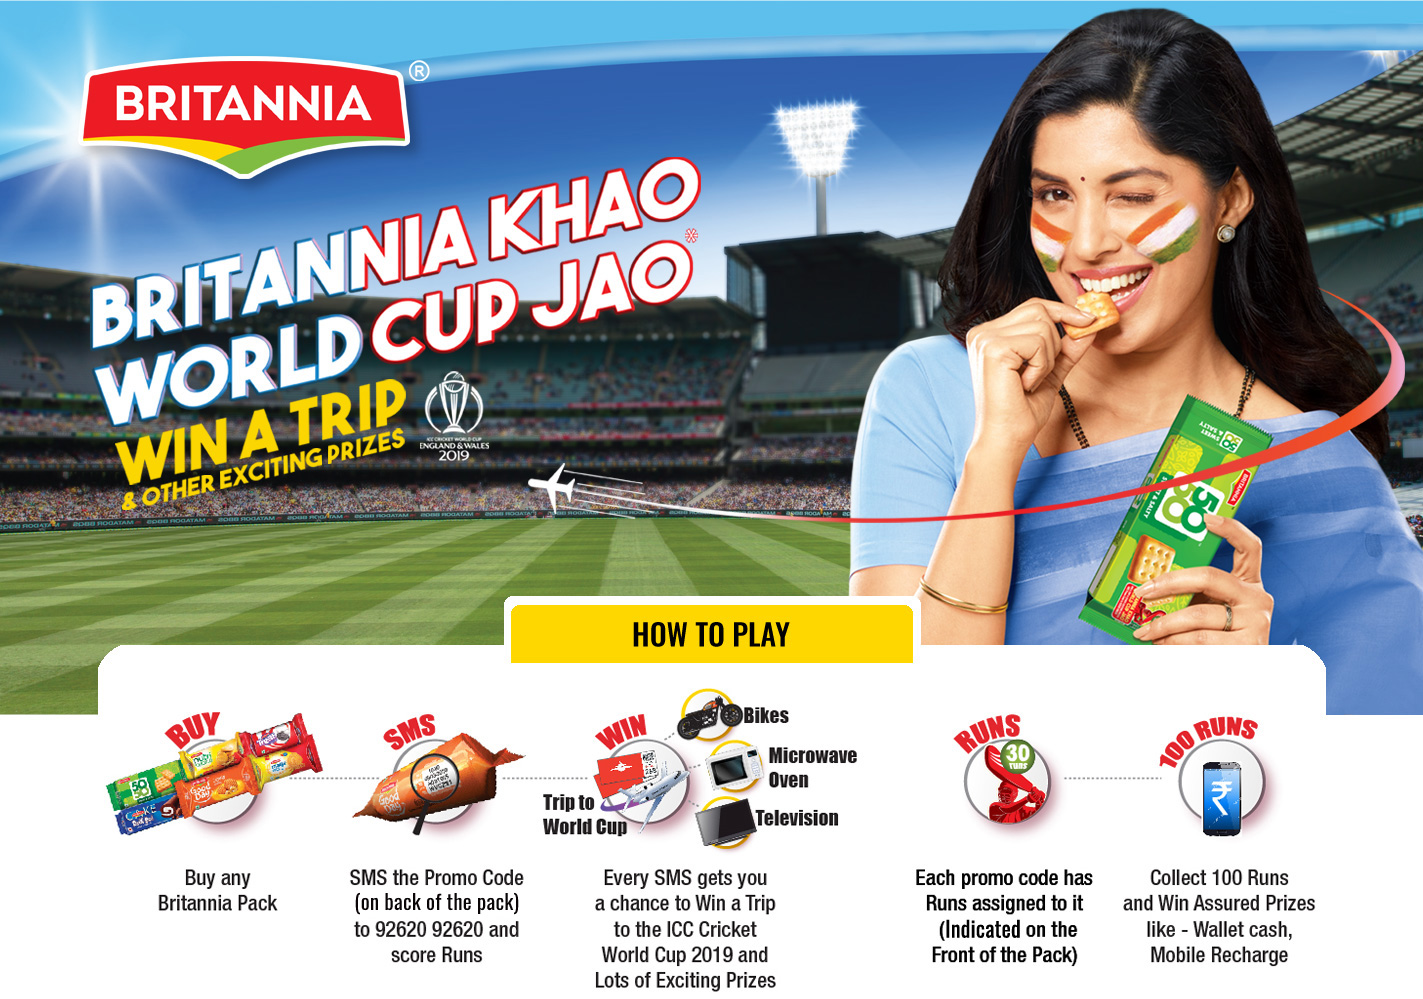 Britannia Khao WorldCup Jaao Offer - Assured prizes for all